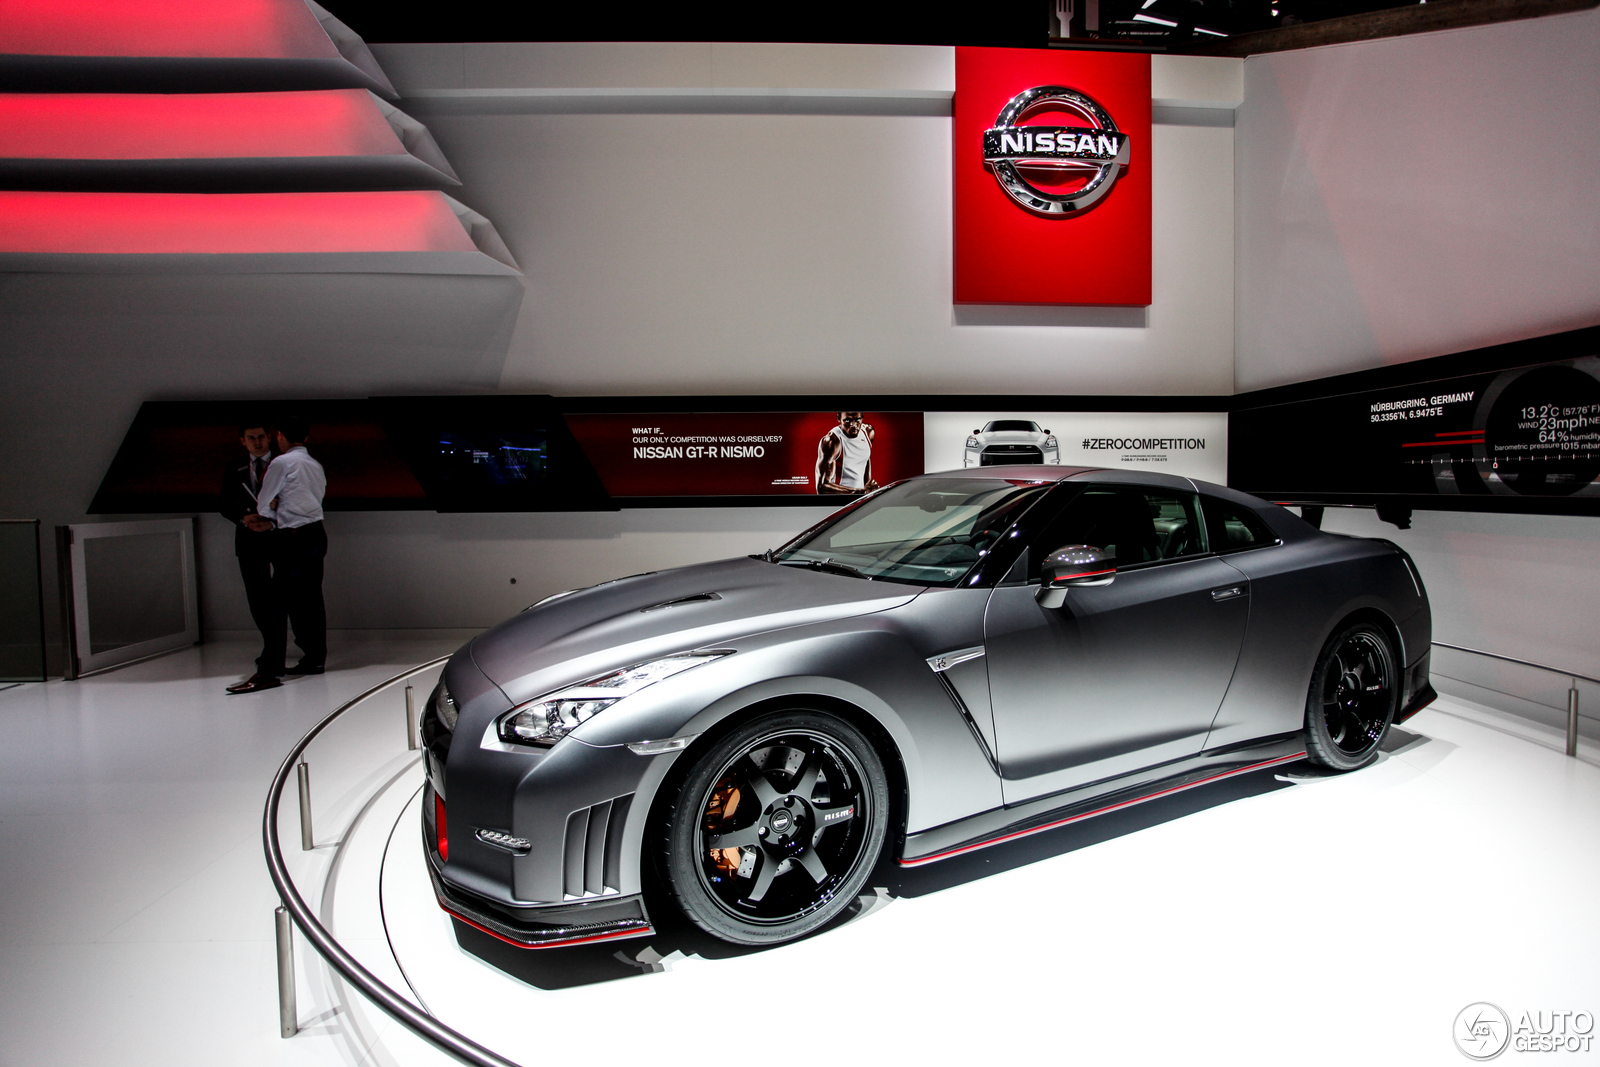 geneva 2014 nissan gt r nismo. Black Bedroom Furniture Sets. Home Design Ideas